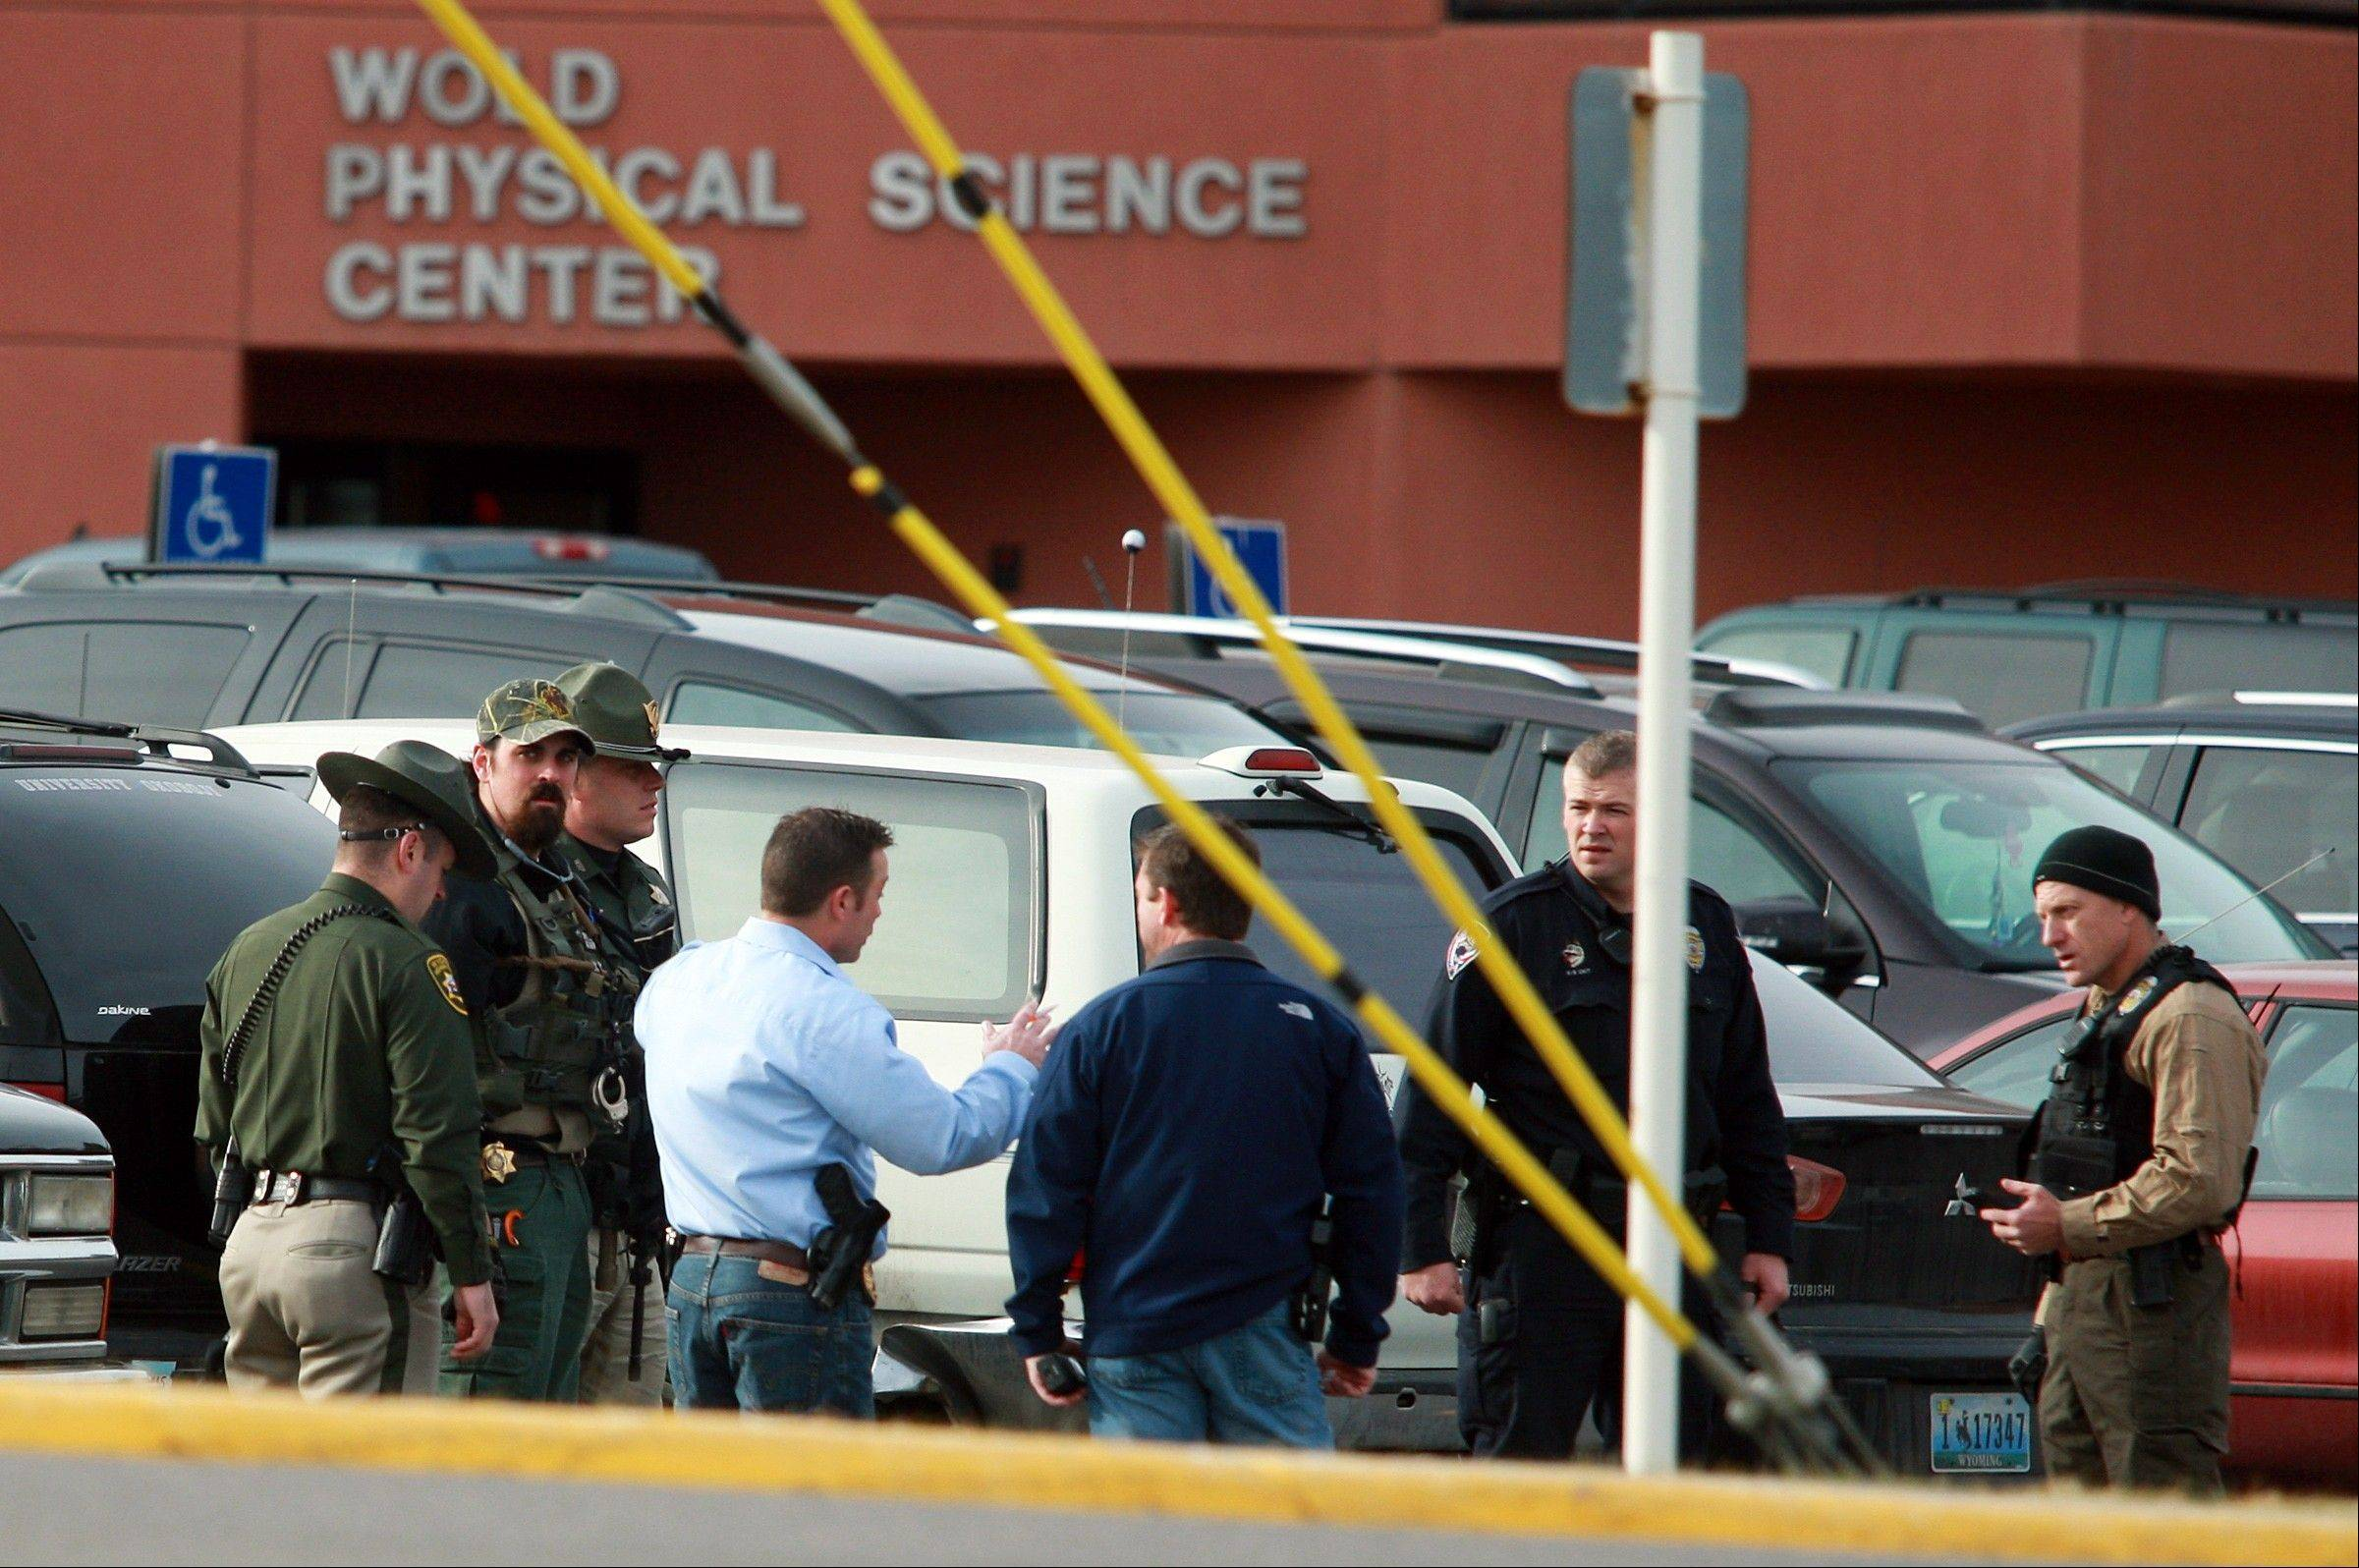 Associated Press Law enforcement officers from various agencies prepare to sweep the Wold Physical Science Center Friday after a reported homicide at Casper College in Casper, Wyo.